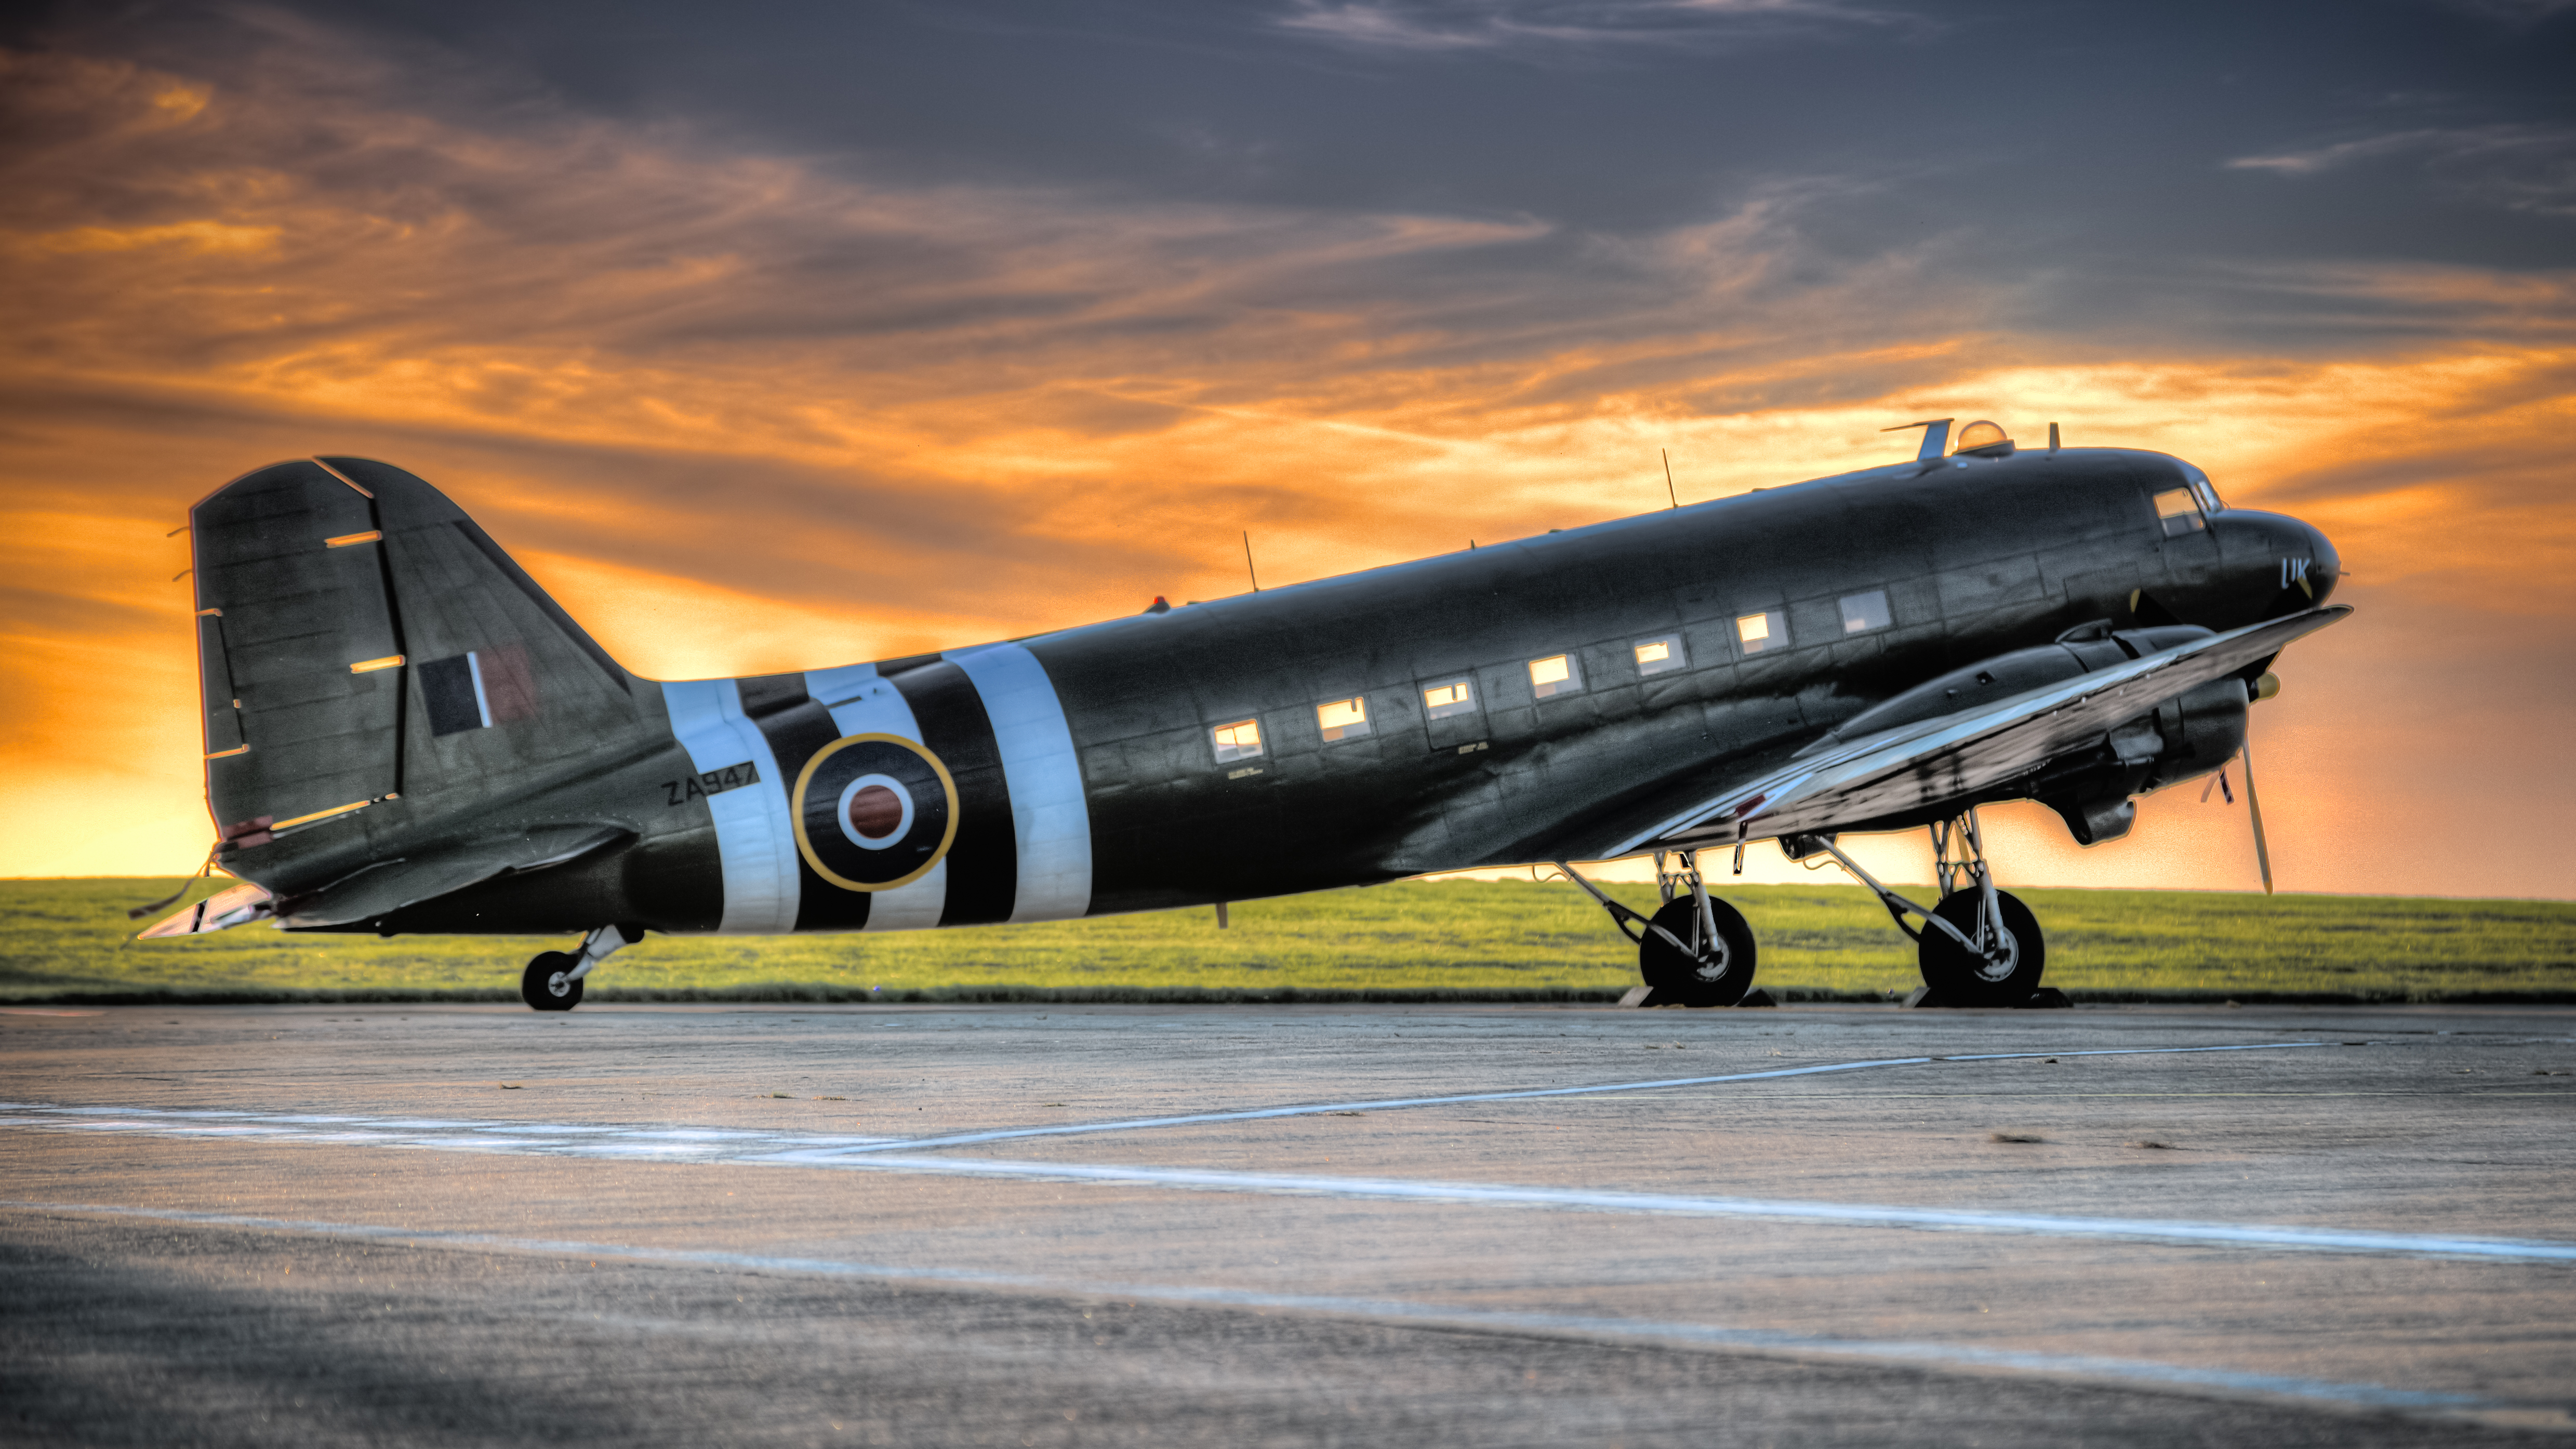 Photo of Black and White Airplane during Golden Hour